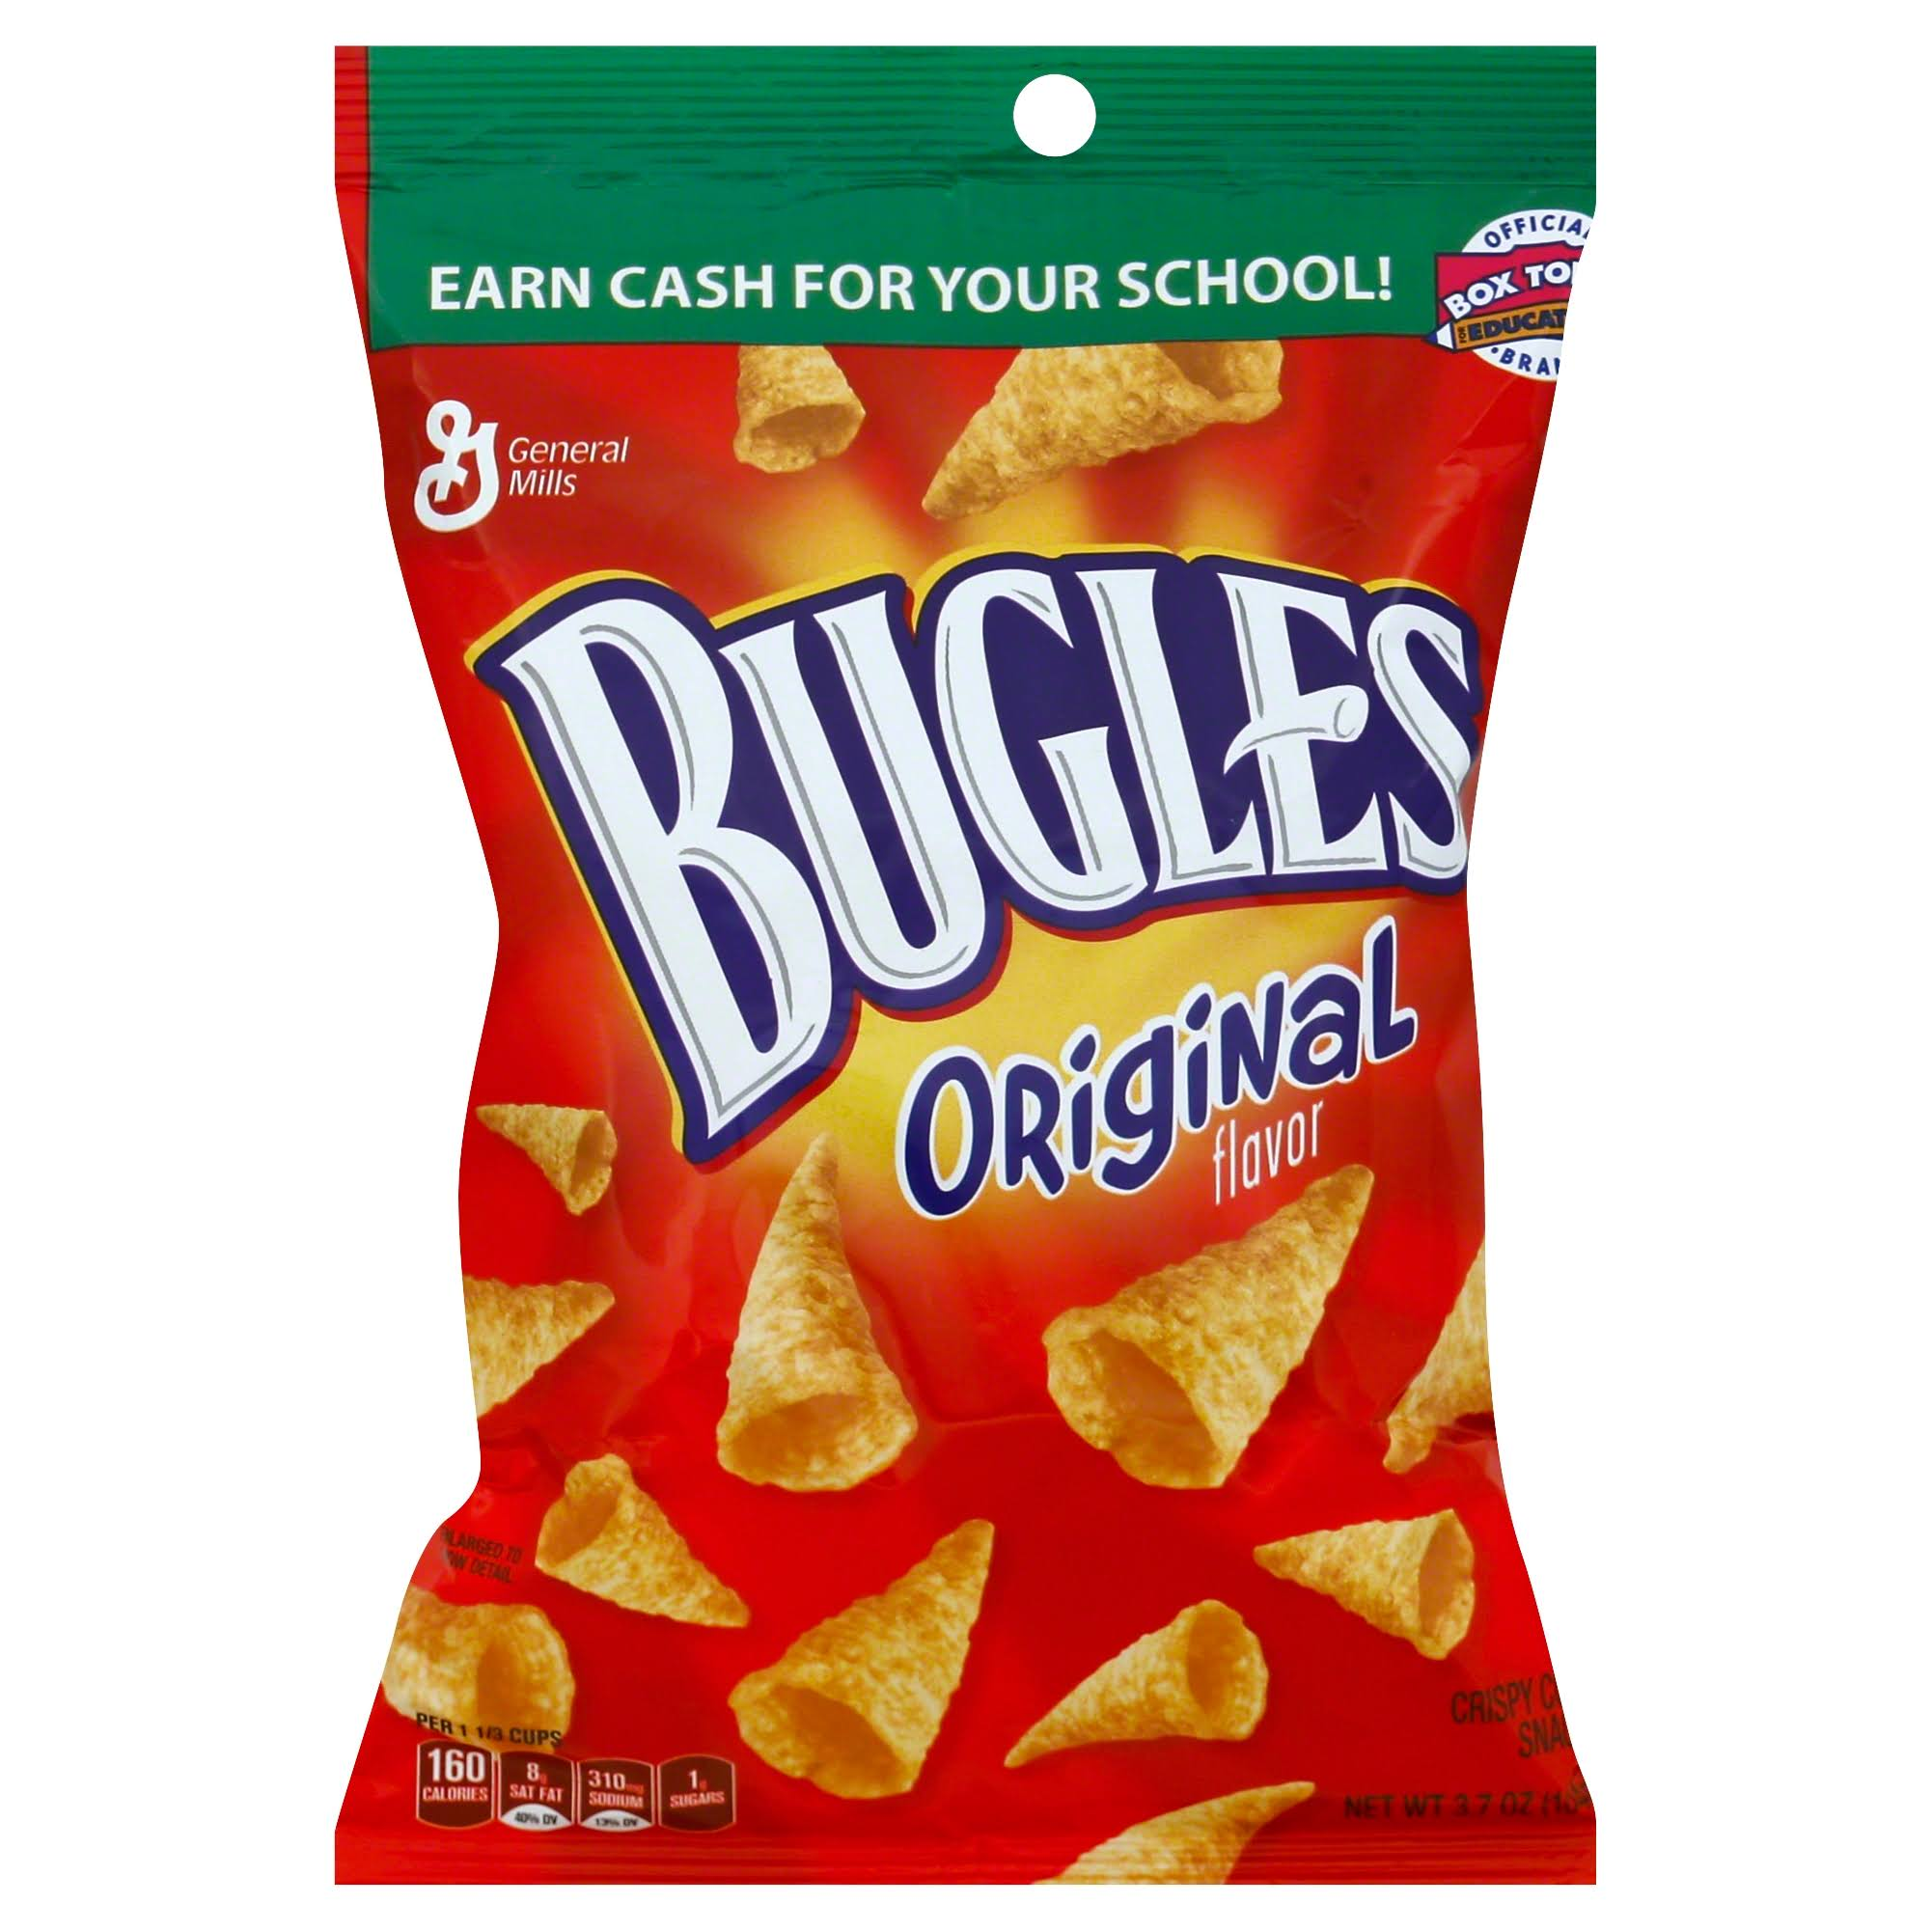 Bugles Original Flavor Crispy Corn Snacks - 3.7oz